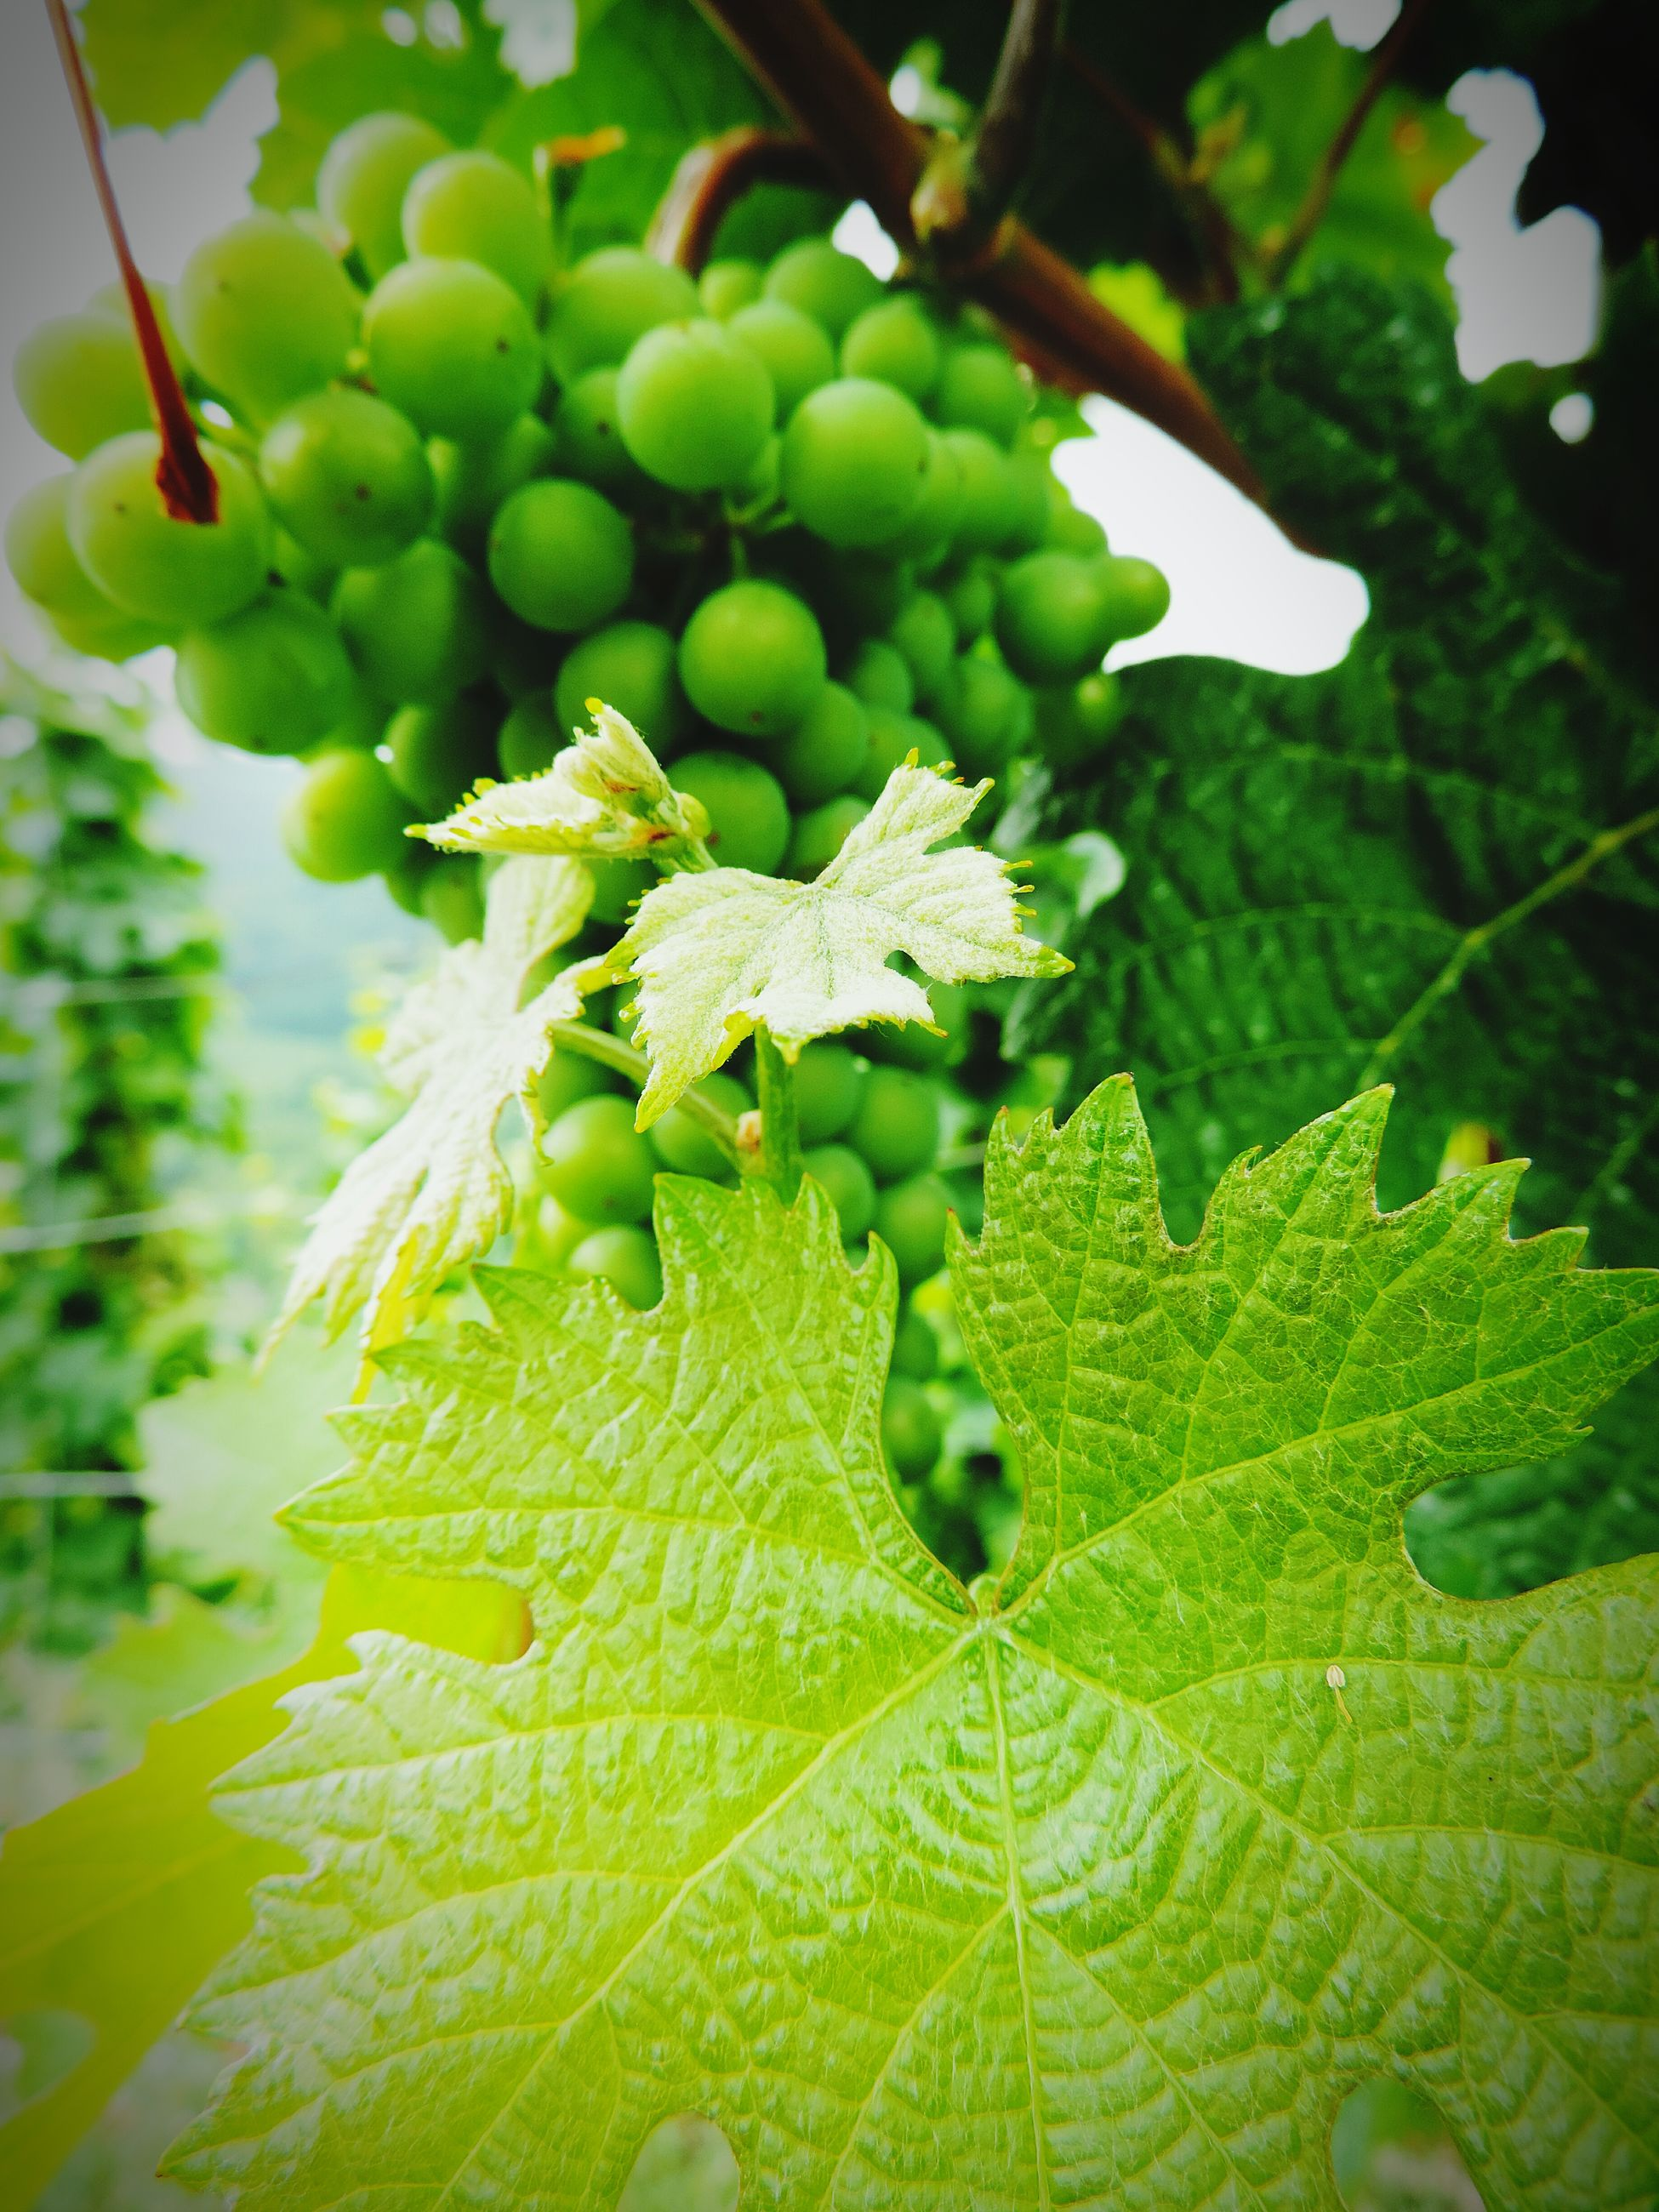 green color, food and drink, leaf, fruit, freshness, food, healthy eating, growth, close-up, focus on foreground, grape, nature, agriculture, plant, green, vineyard, growing, day, no people, vine